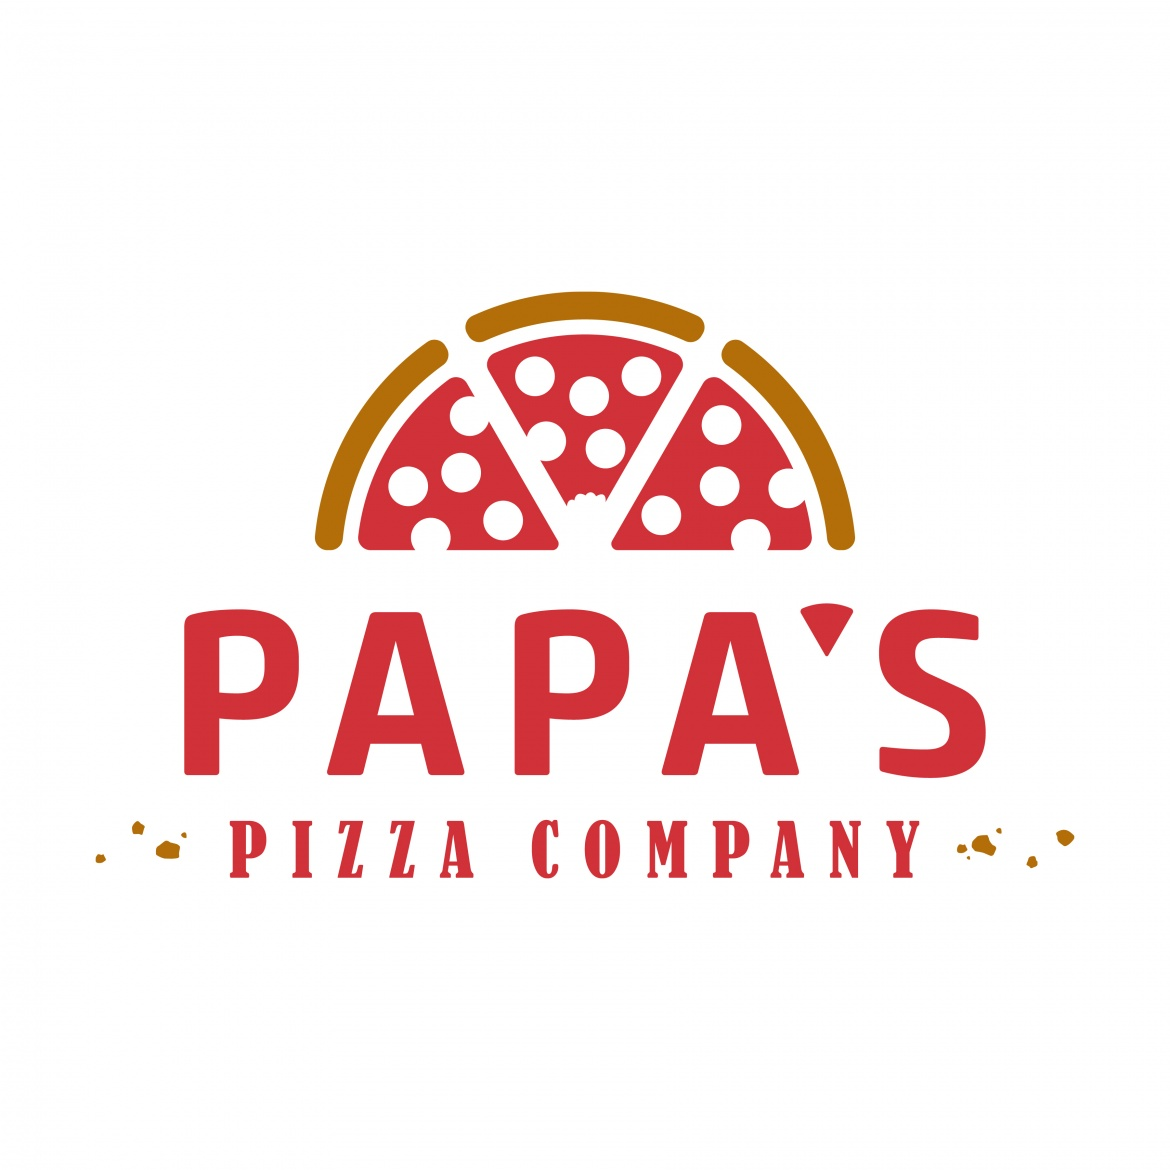 PapasPizza-FINAL2c-1.jpg